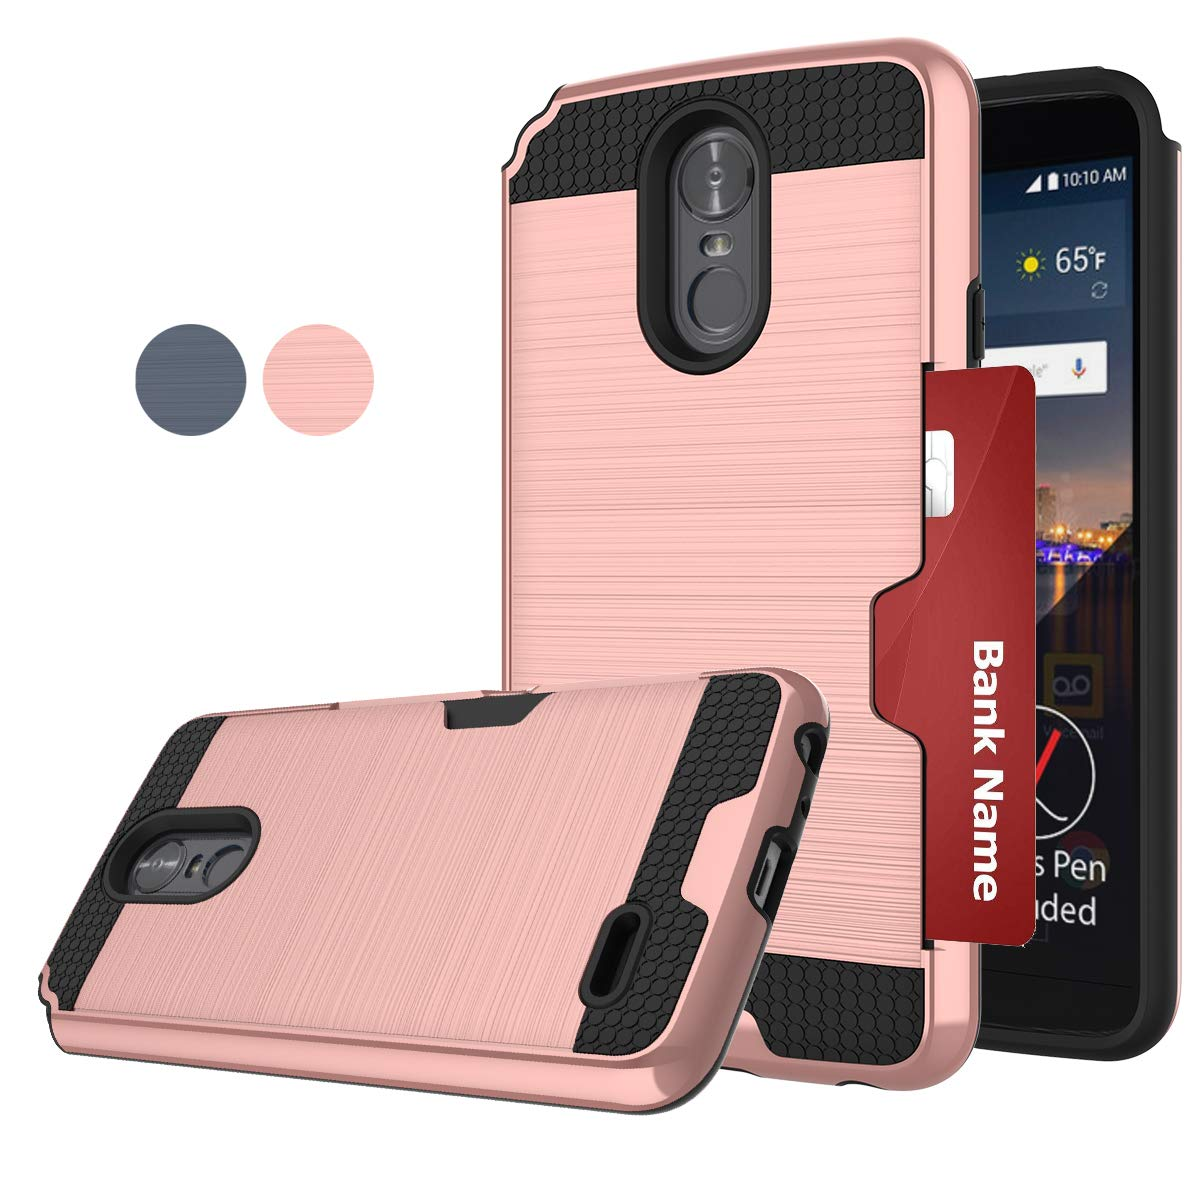 LDStars LG Stylo 3 Phone Case,LG Stylus 3 Case, Stylo 3 Plus LS777 Phoen Cover, [Brushed Texture] PC & TPU Dual Layer Shockproof Protective Case with Card Slots Holder-Rose Gold